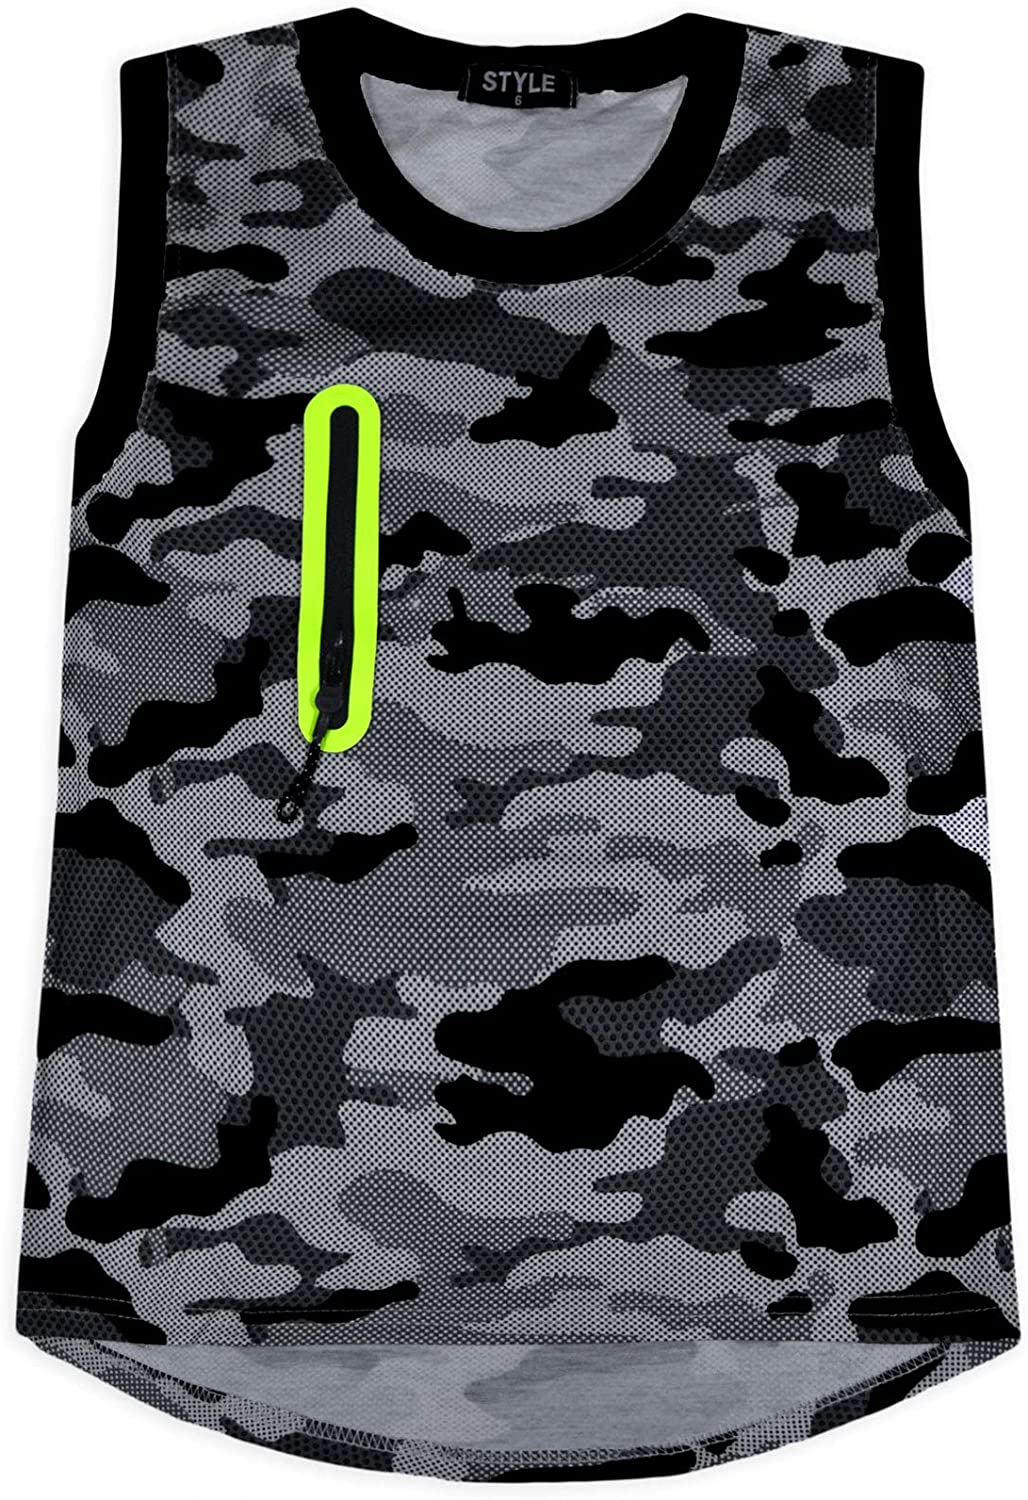 JollyRascals Boys Camo Set Kids Vest Top and Shorts Set New Camouflage Outfit Age 4-14 Years